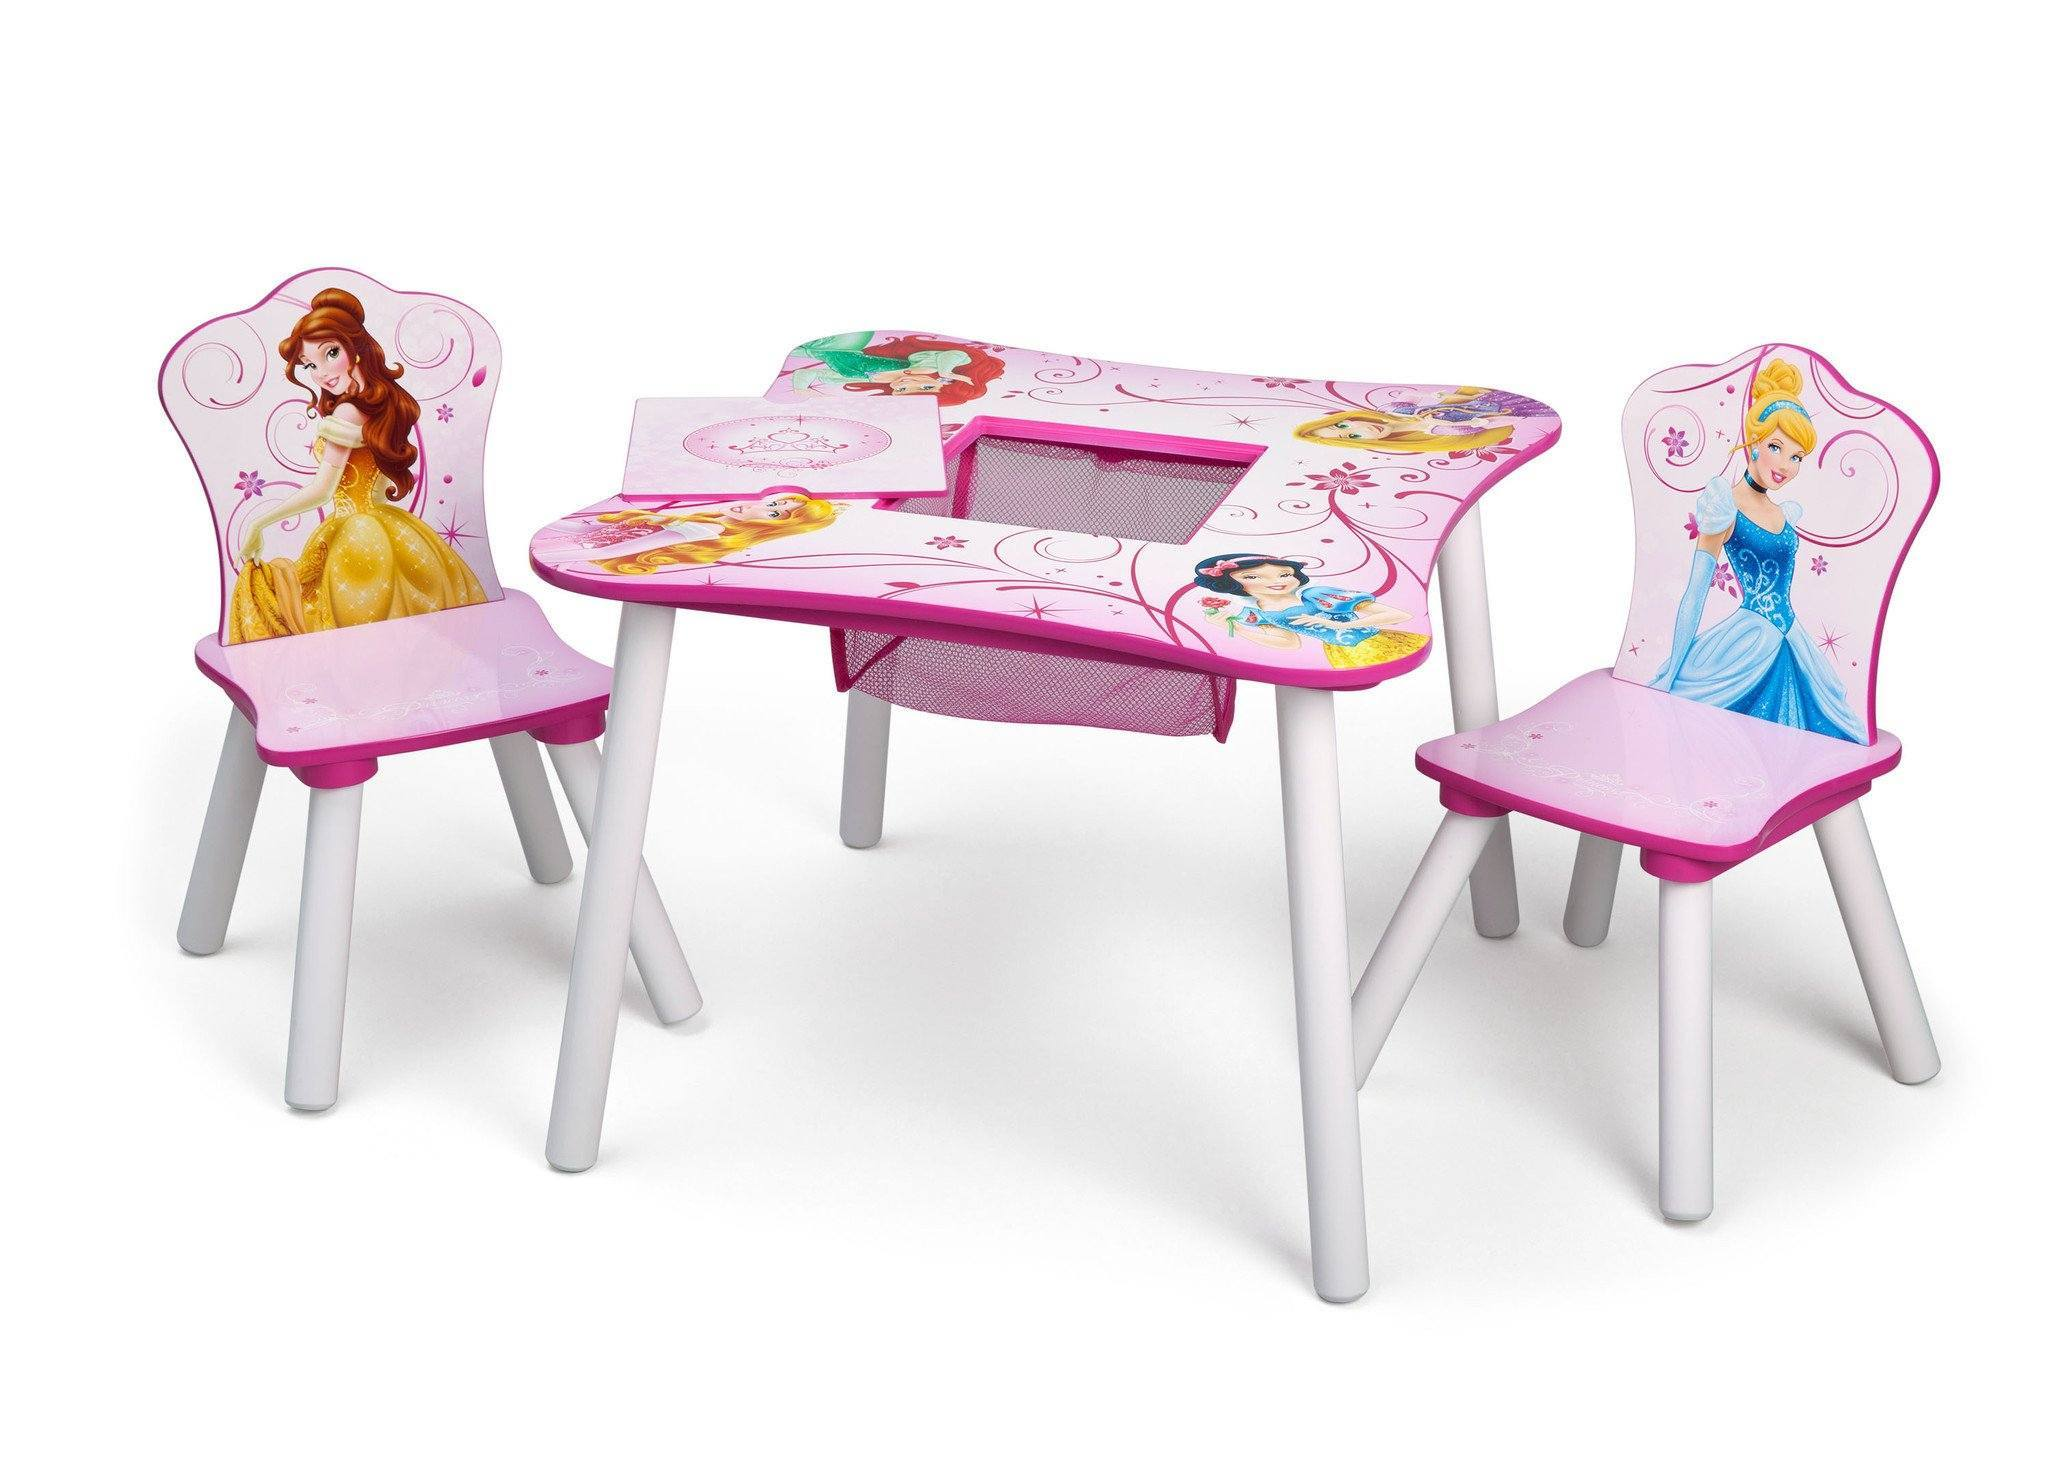 ... Delta Children Princess Table and Chair Set with Storage Left View a2a  sc 1 st  Delta Children : princess table and chair set - pezcame.com